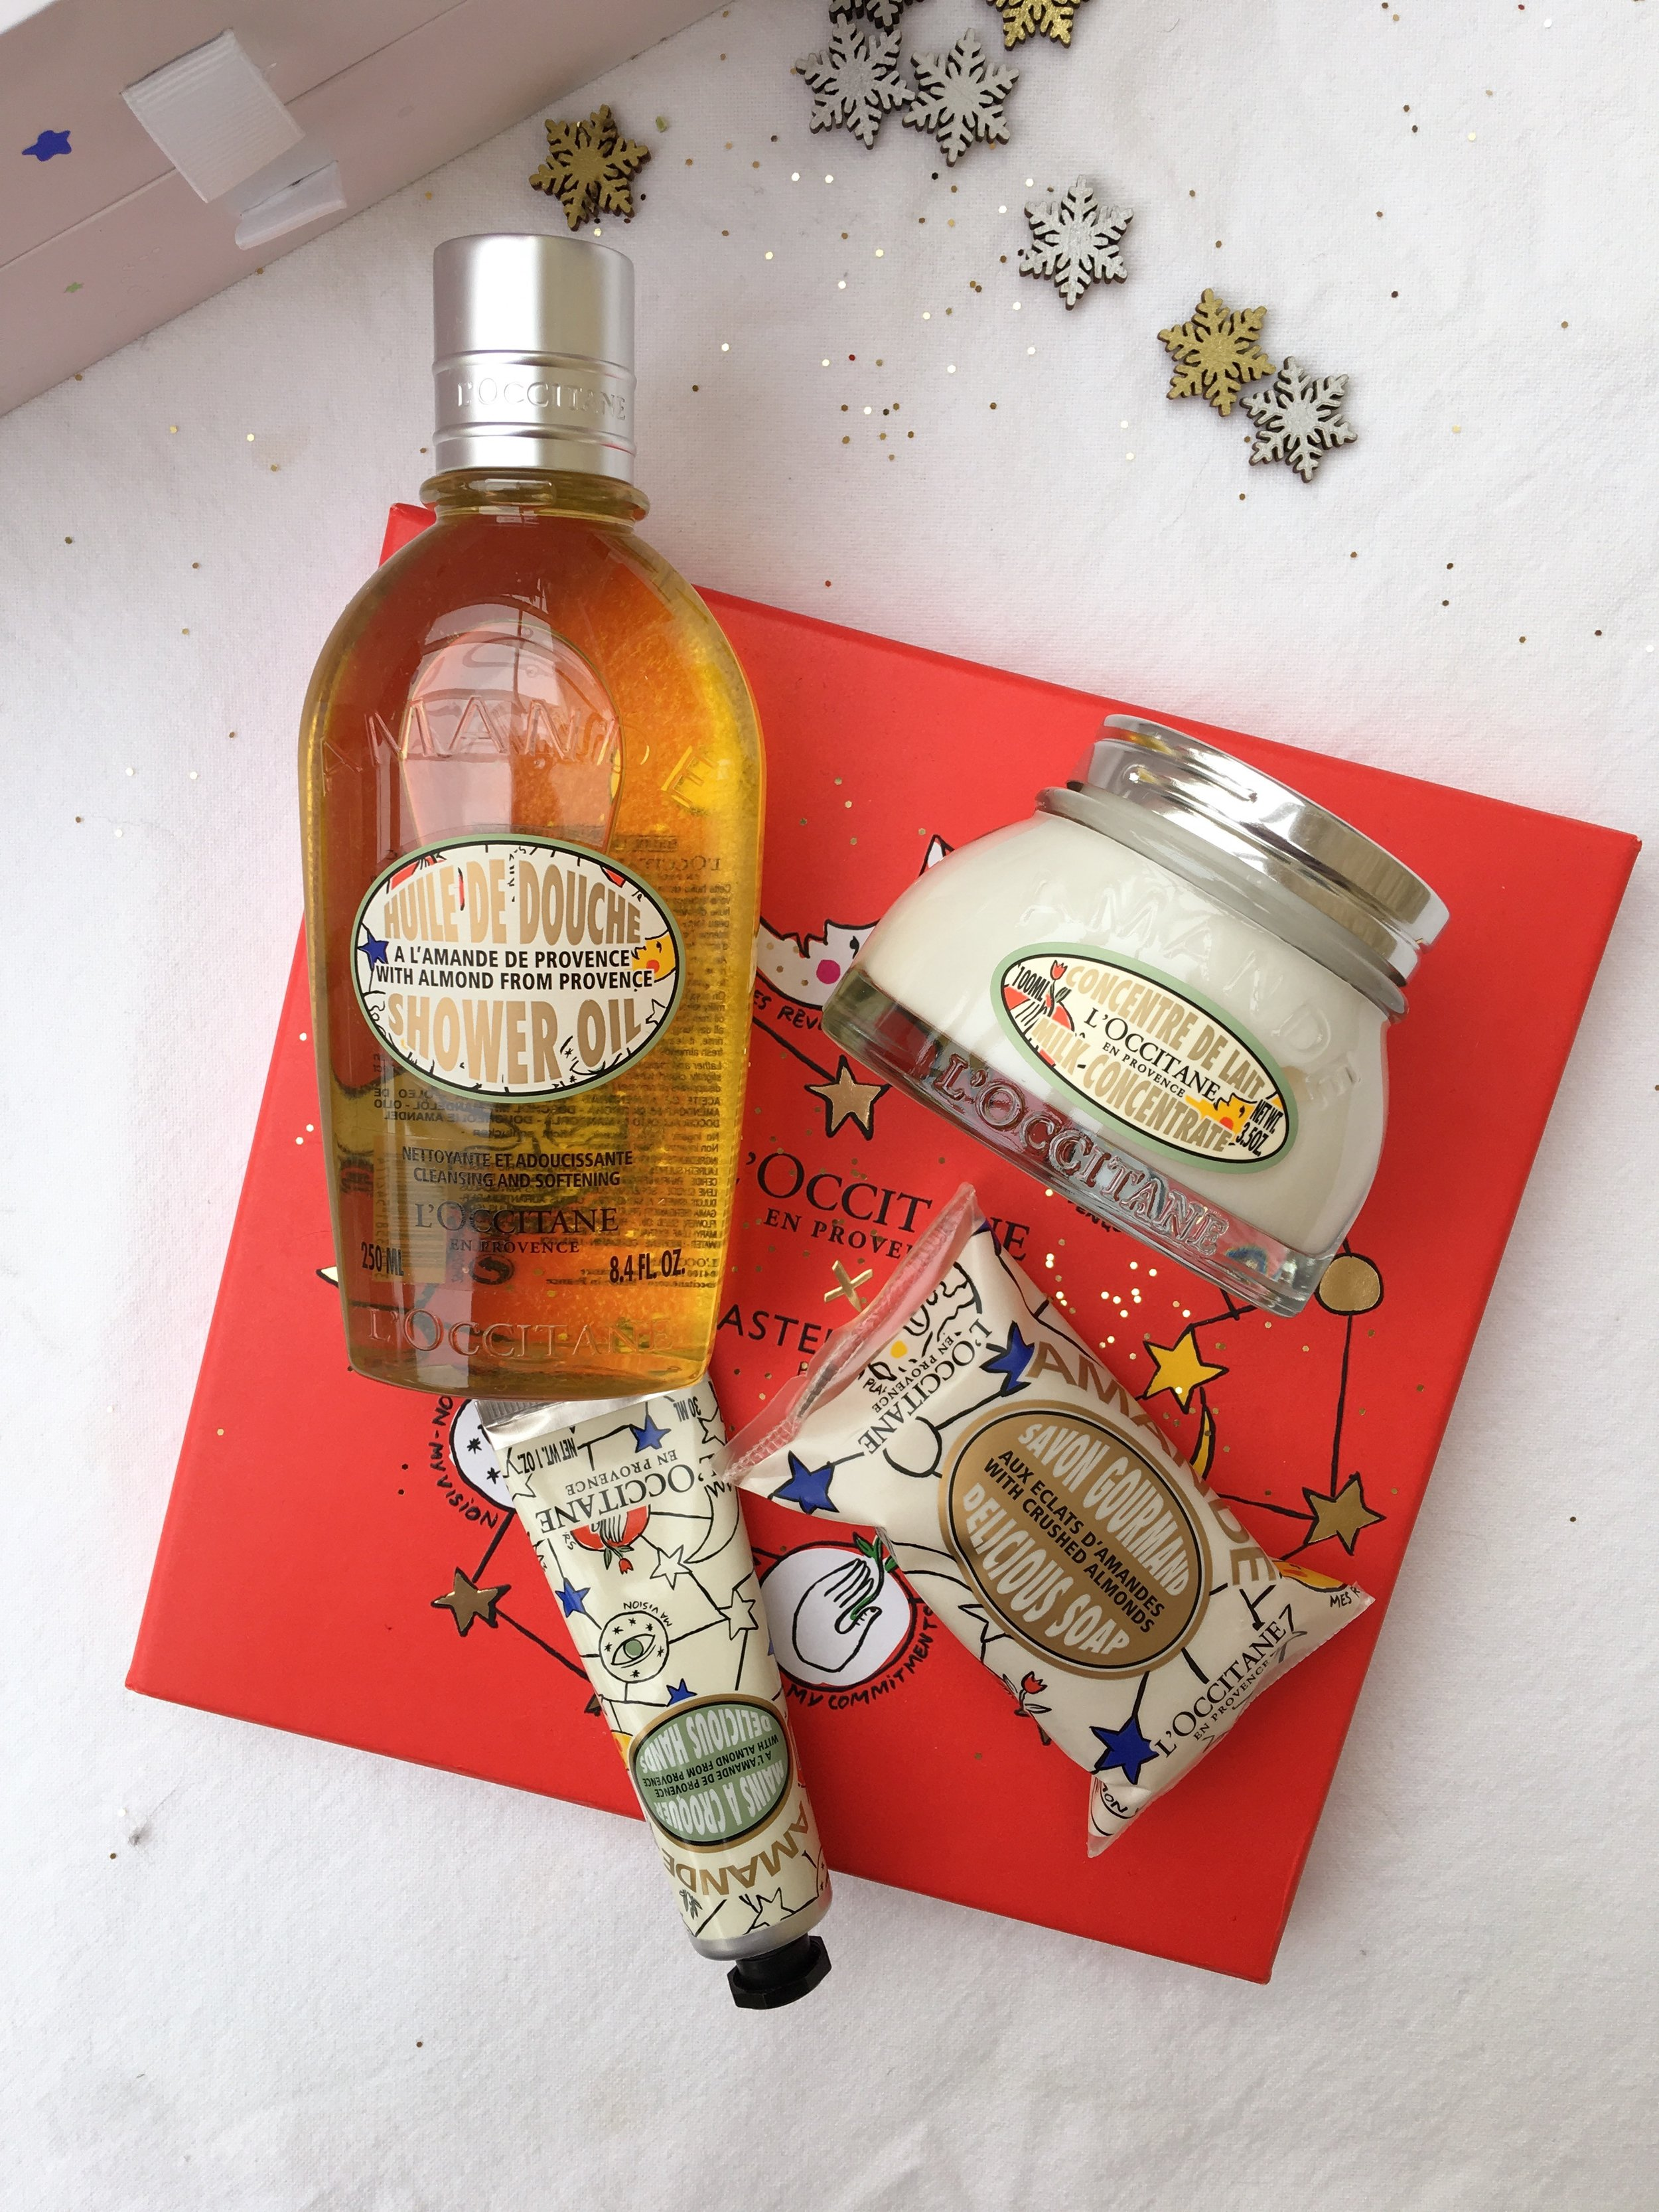 L'OCCITANE ALMOND BODY RANGE - AMOUR OPHELIA